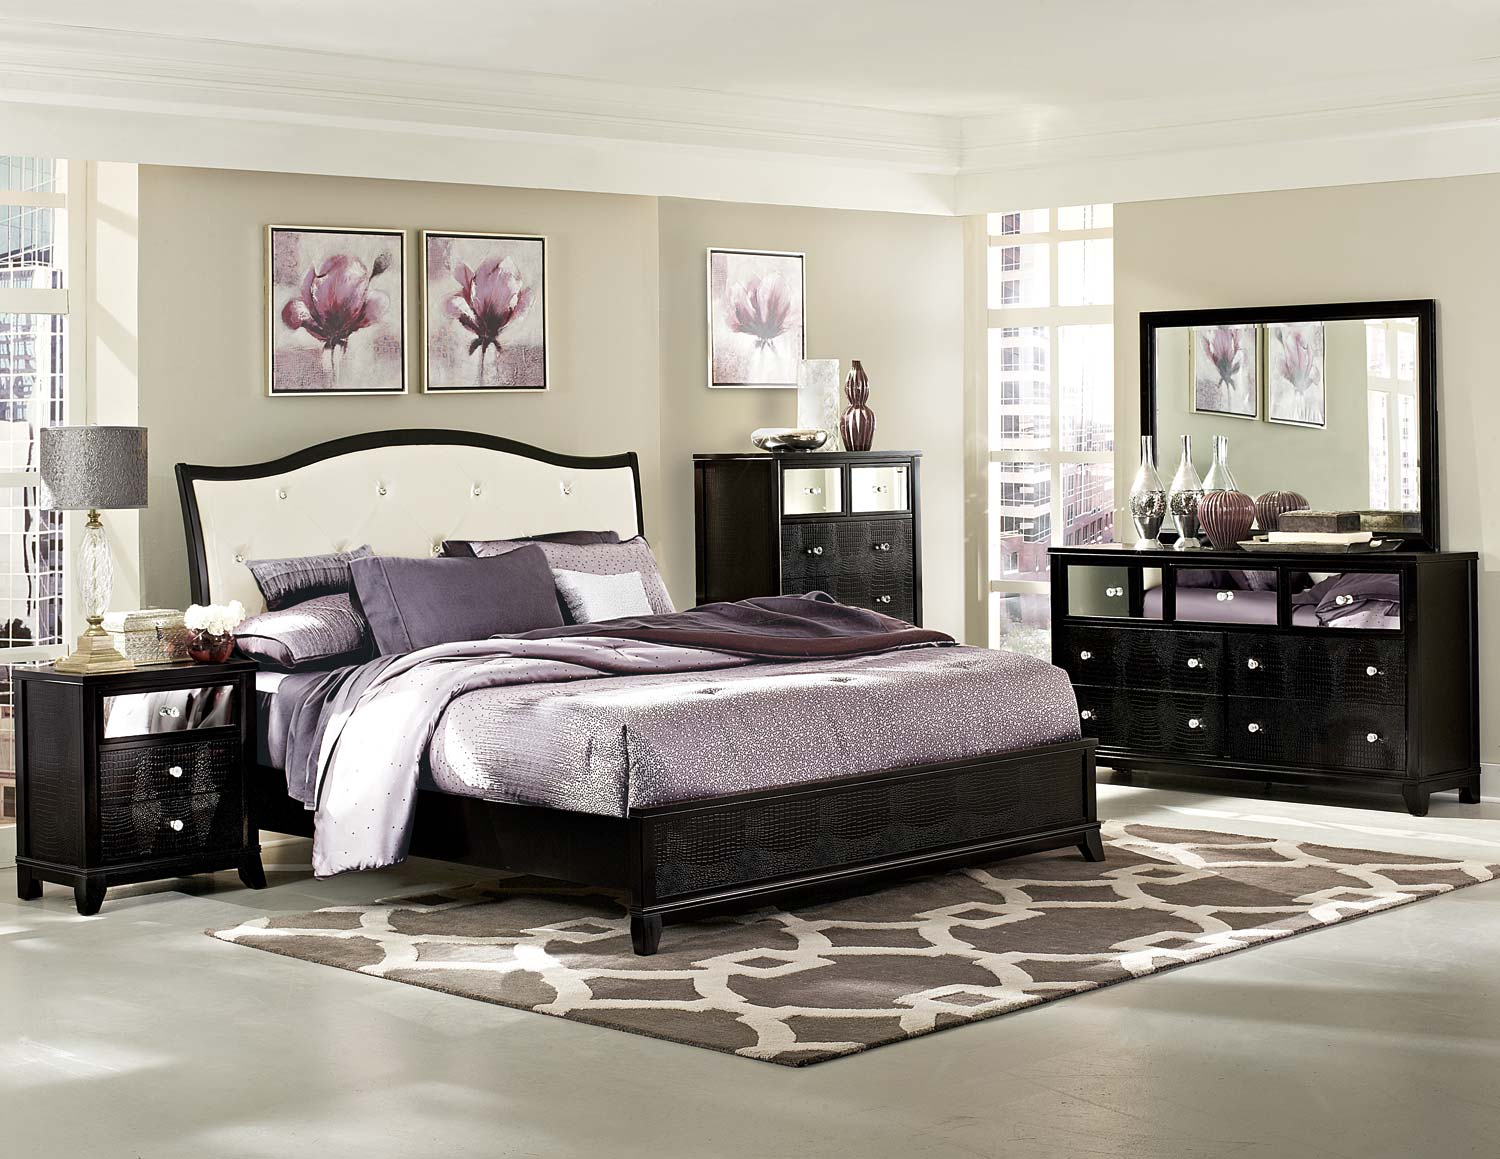 Homelegance Jacqueline Upholstered Bedroom Collection